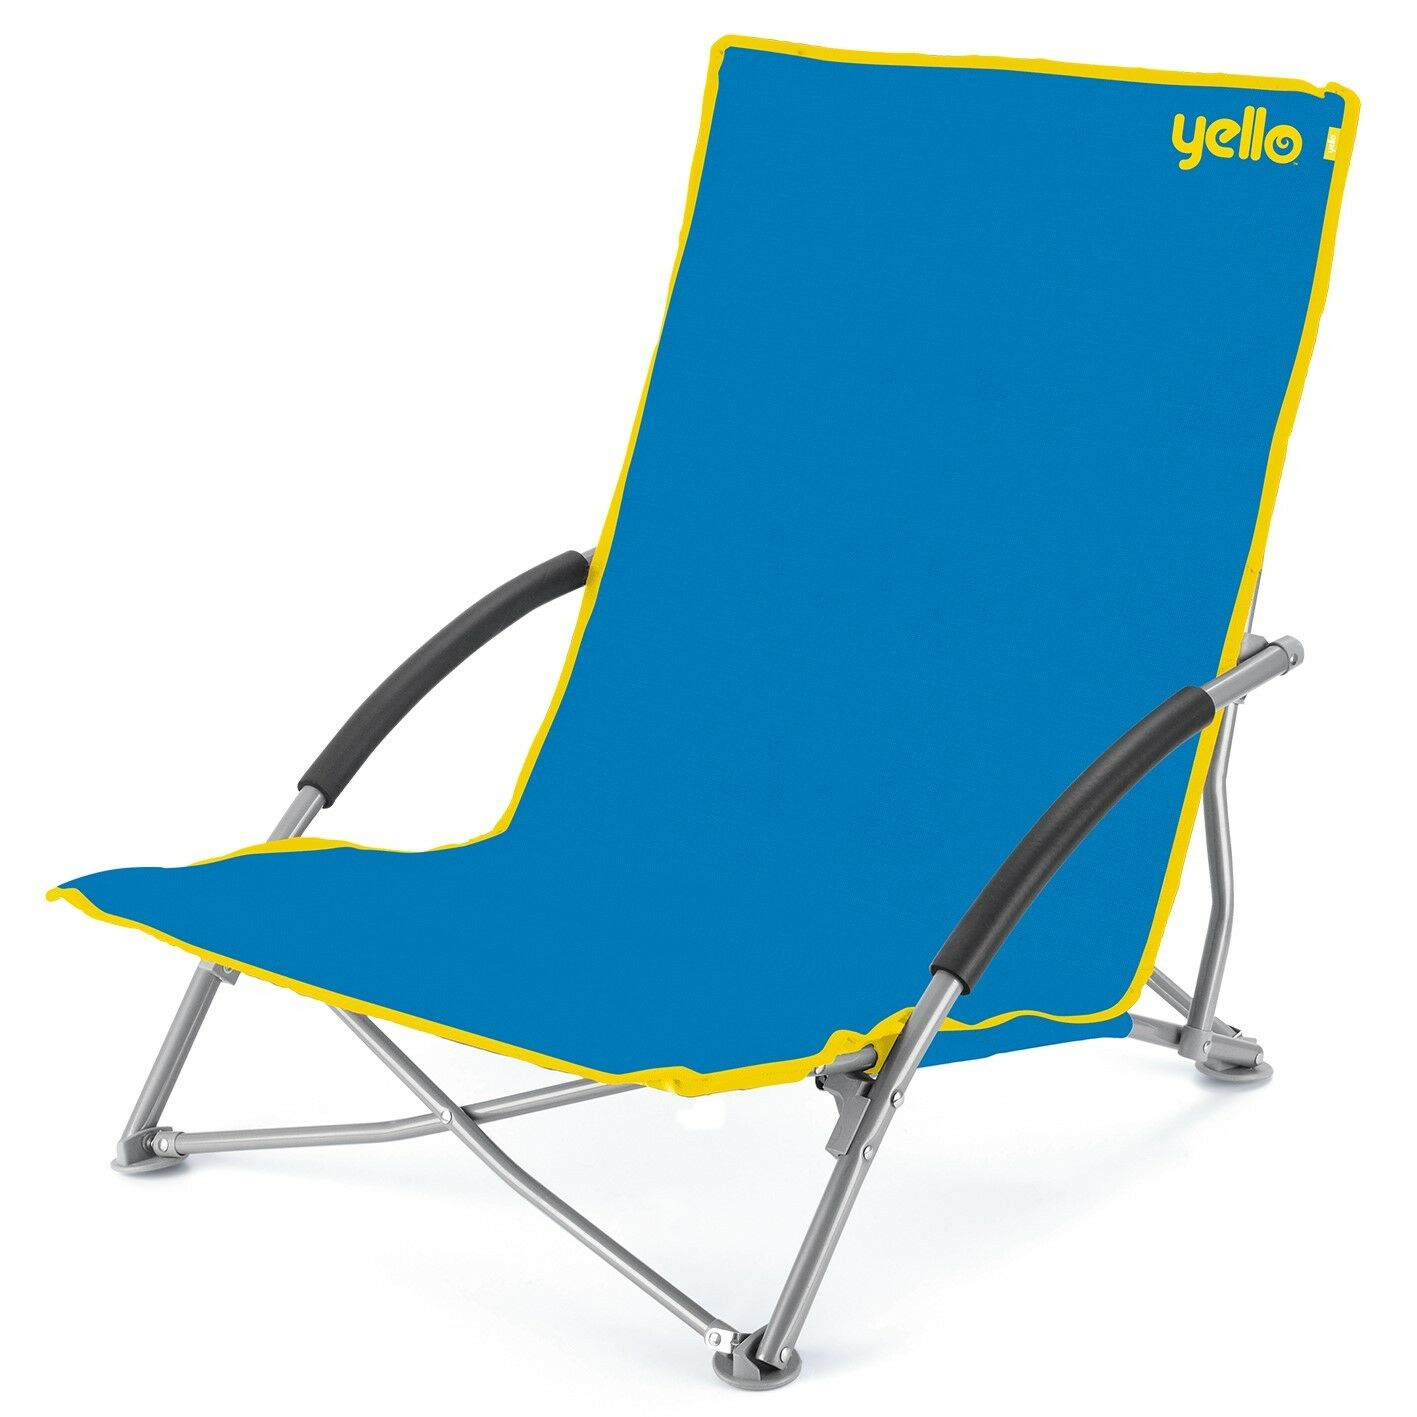 Festival Piscine Xdcbthrsq Chaise Basse Camping Longue Pliable Plage xWCBodeQrE